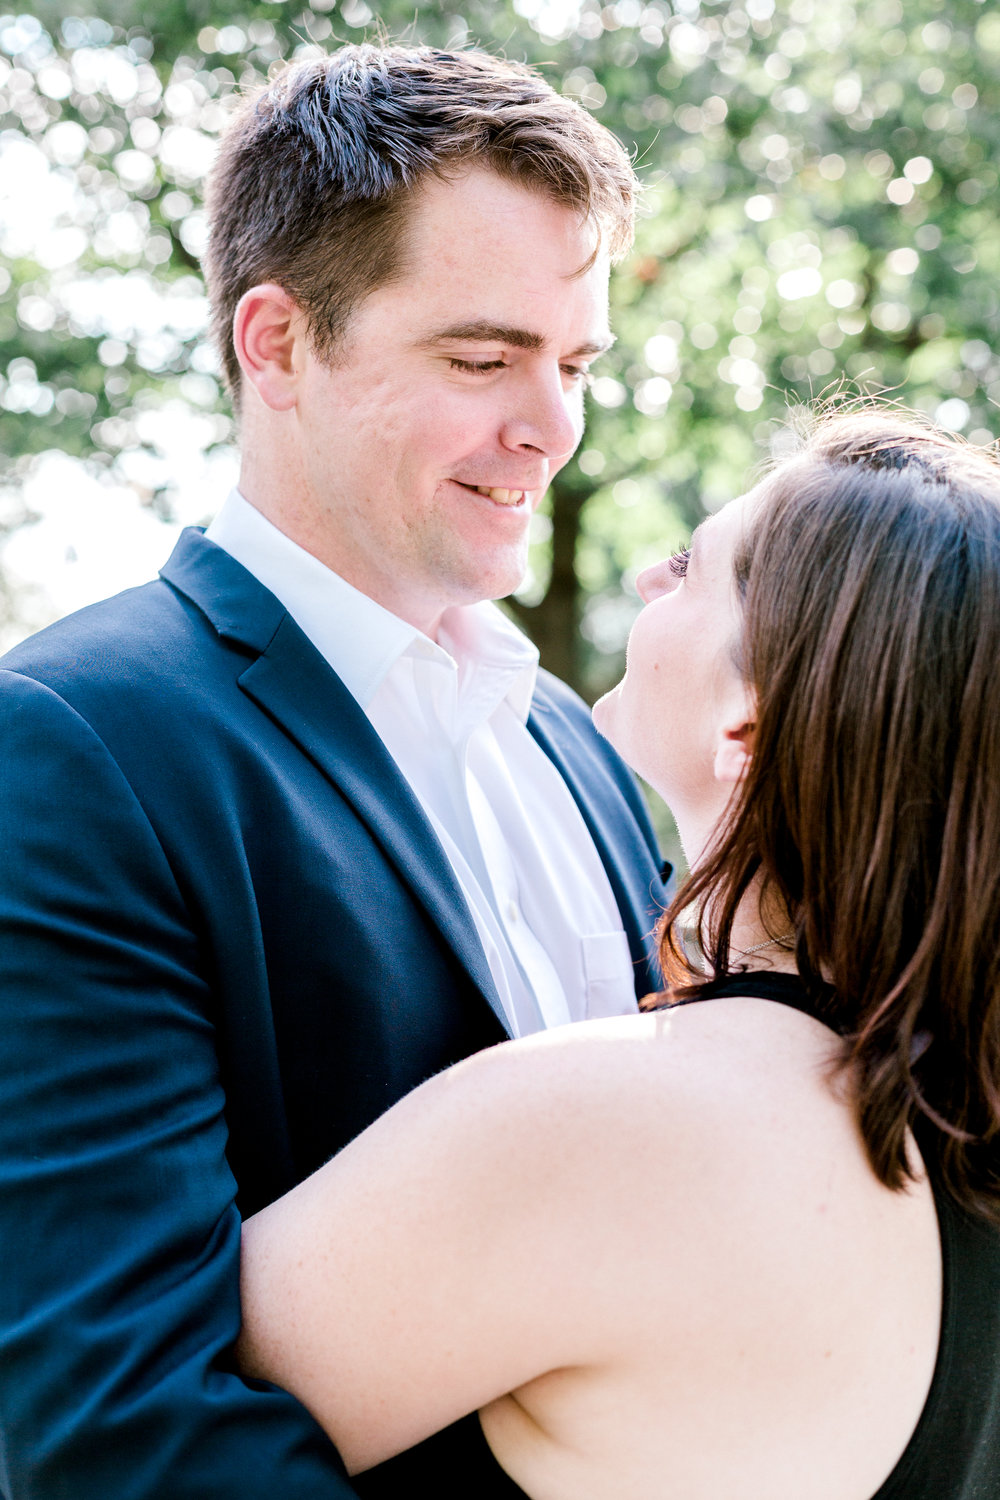 Baltimore Federal Hill Park Stormy Engagement Session Lytle Photo Co (48 of 92).jpg